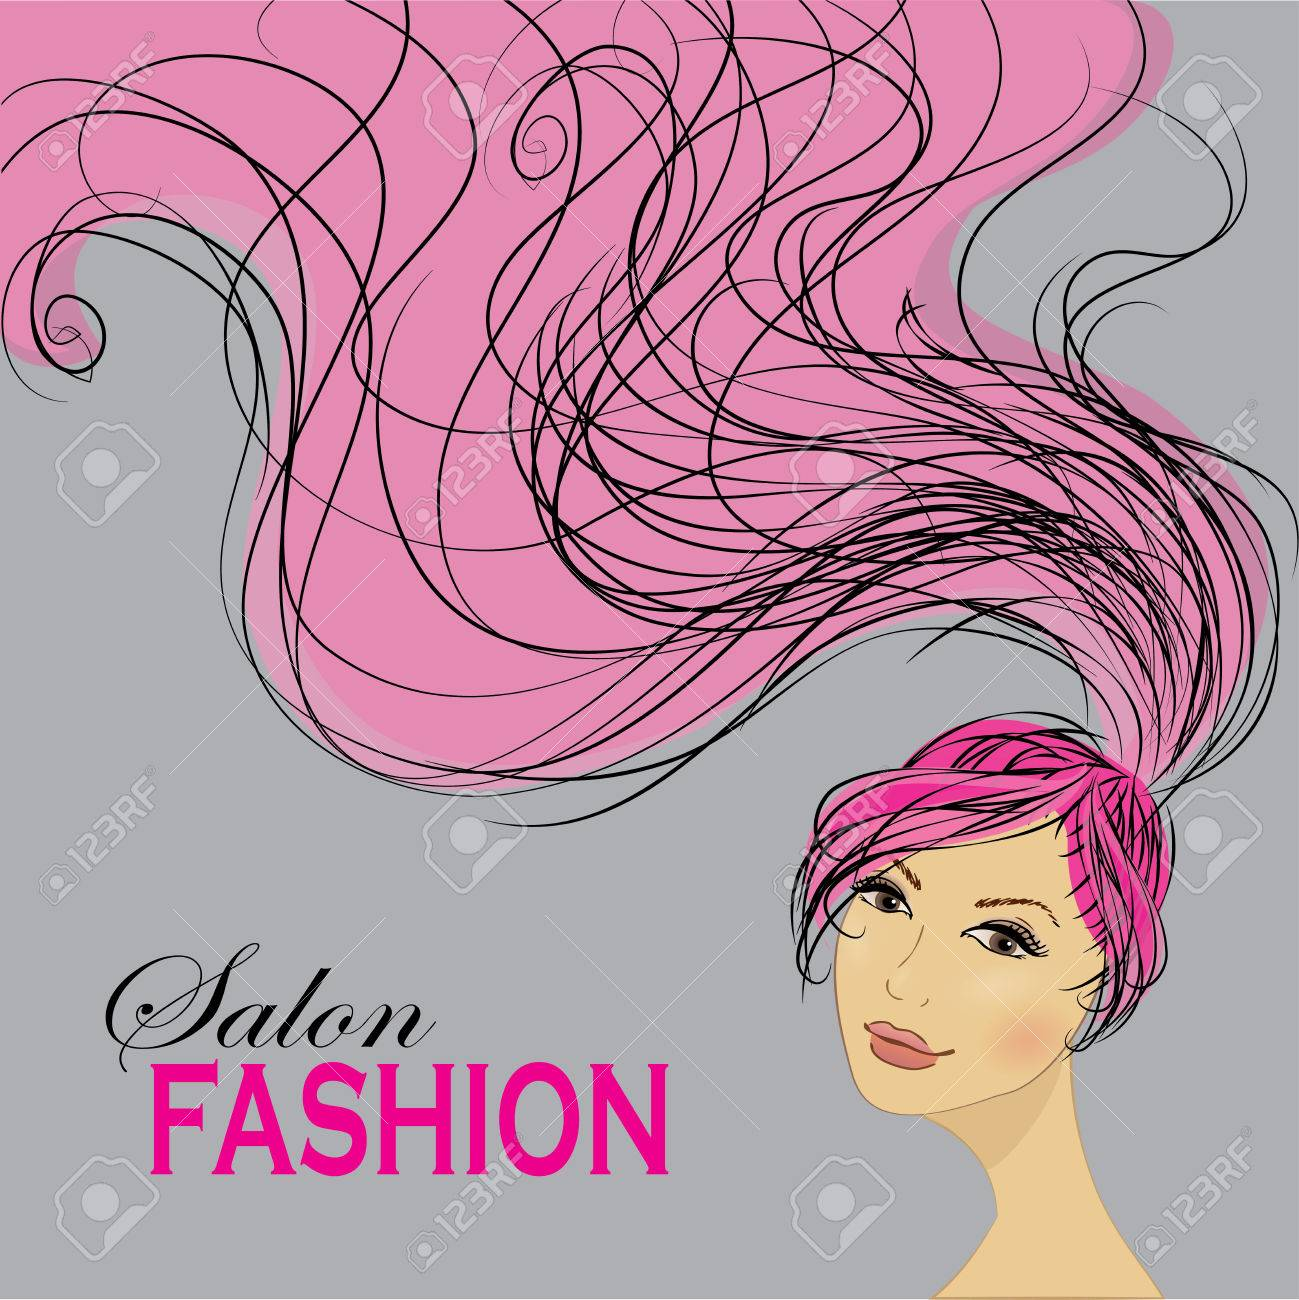 Fashion Woman With Long Hair Vector Illustration Stylish Design Royalty Free Cliparts Vectors And Stock Illustration Image 38810181